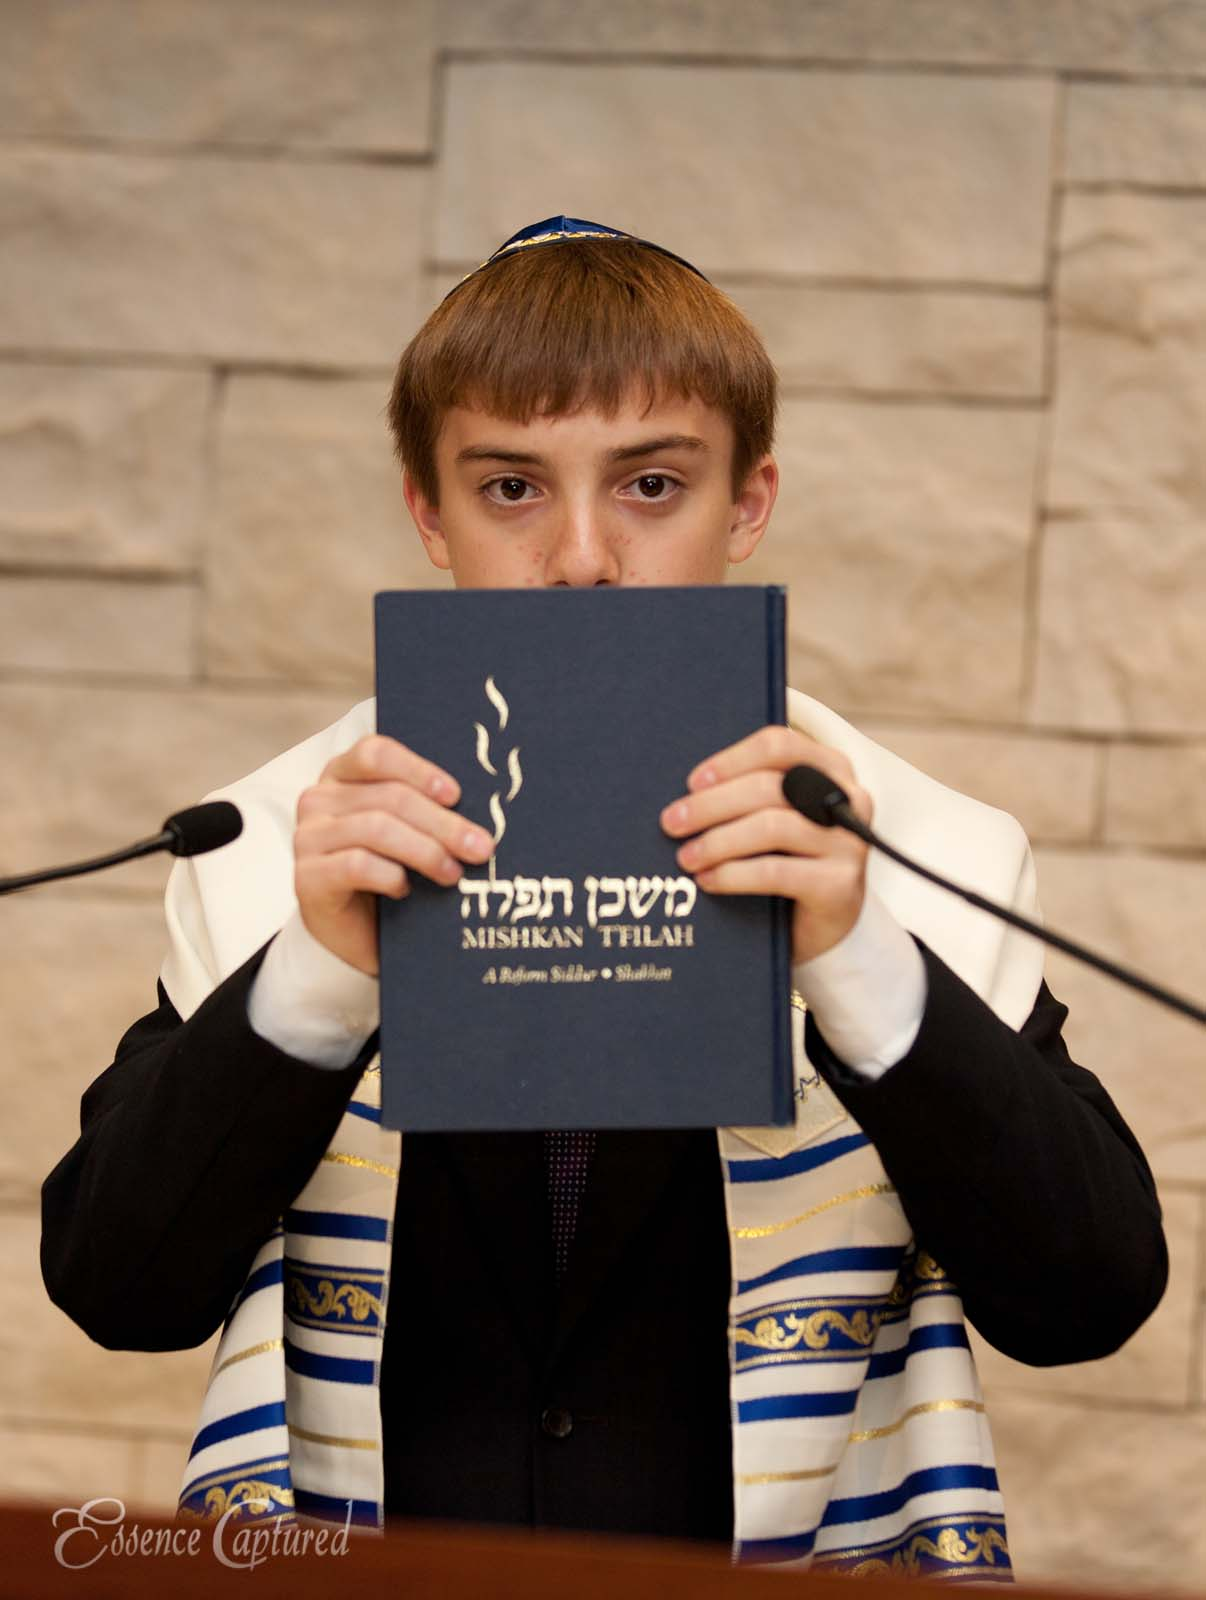 Bar Mitzvah boy shows reading book